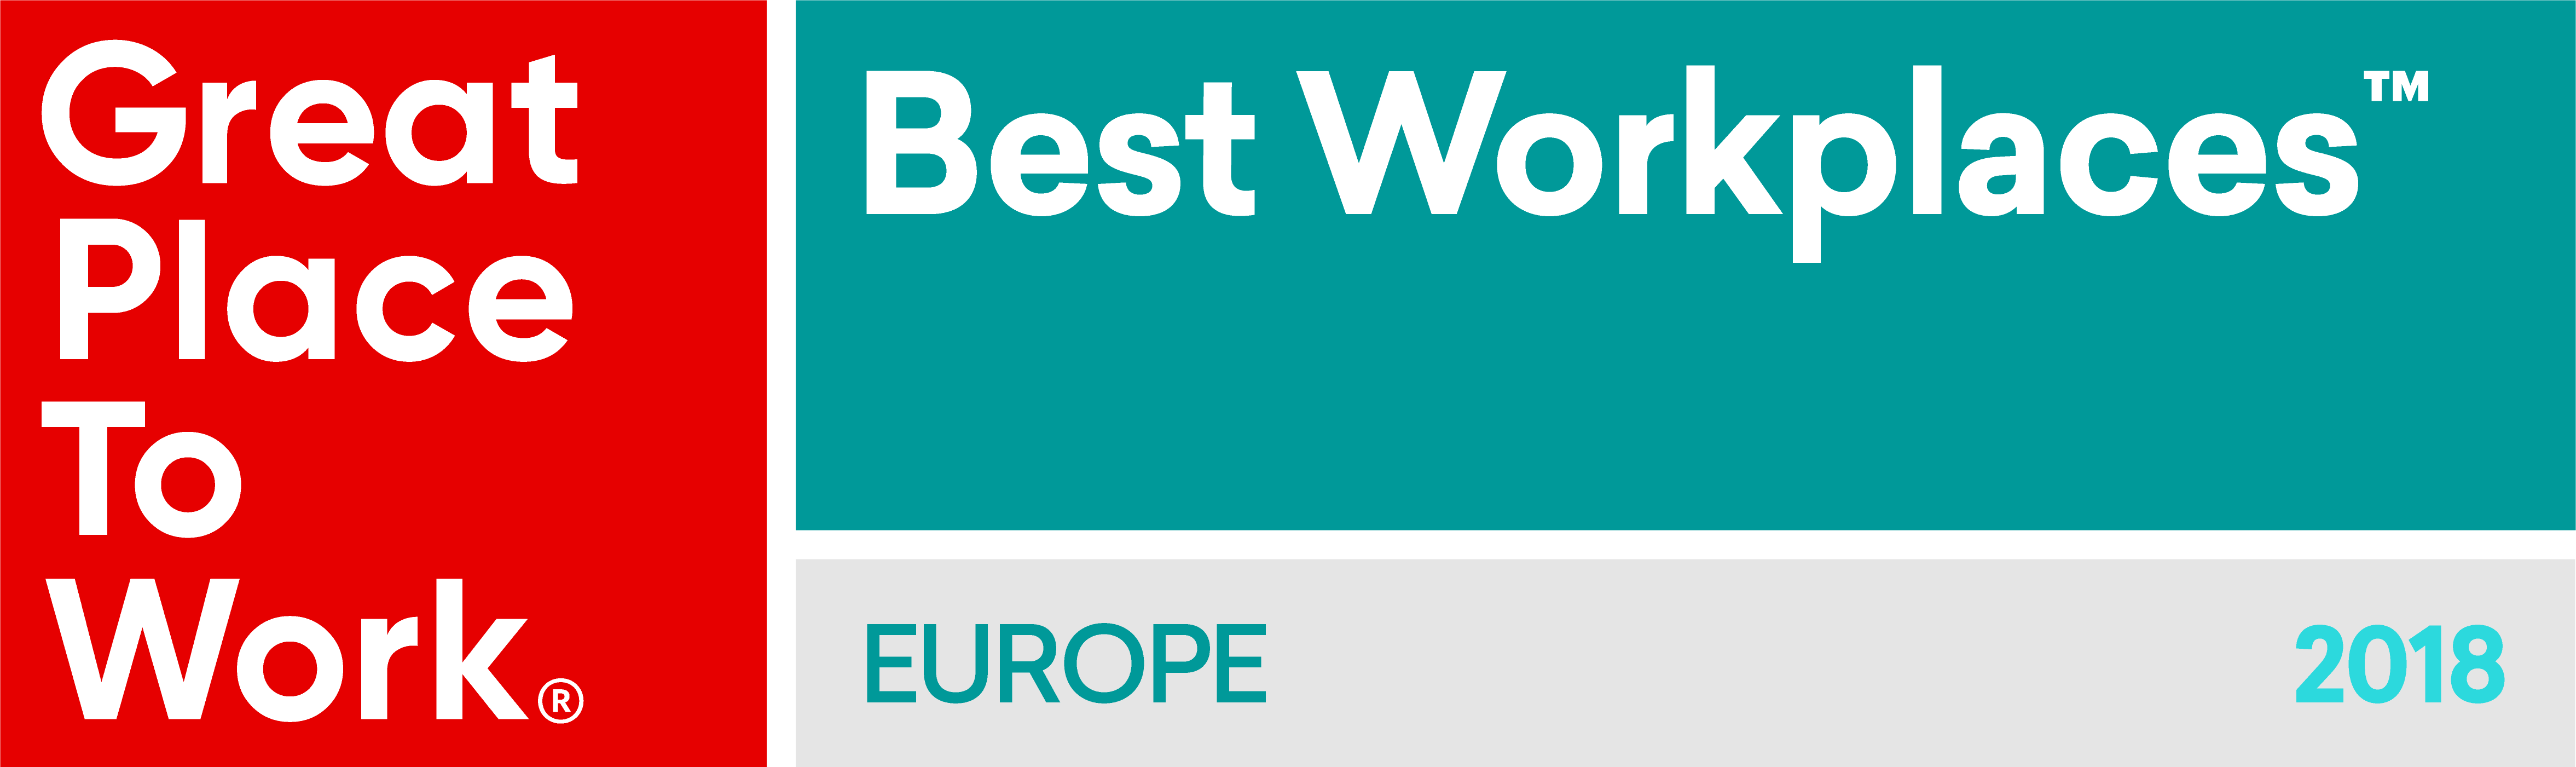 Best Workplaces in Europe 2018